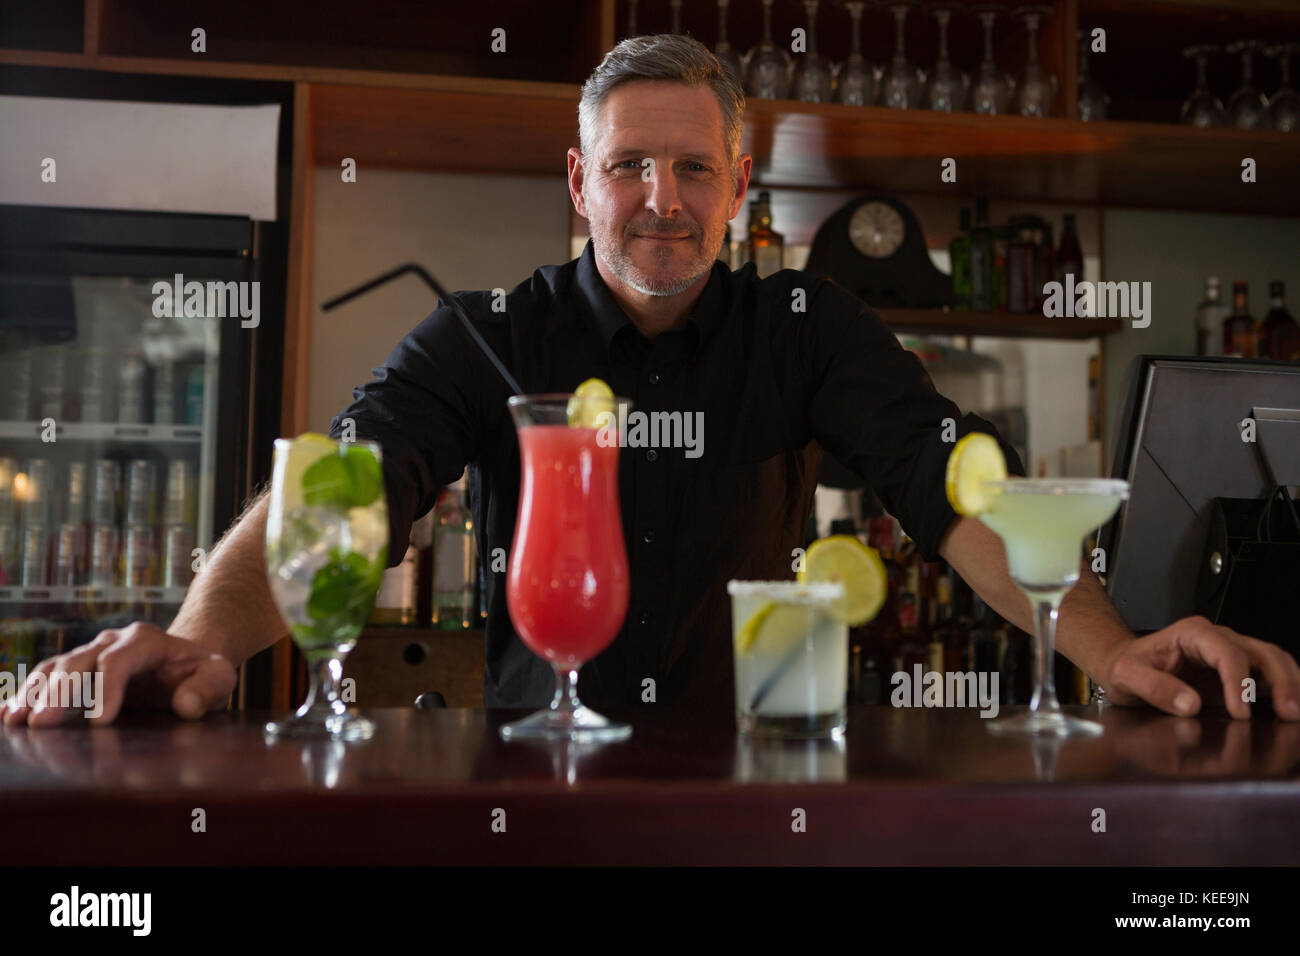 Portrait of waiter standing at bar counter - Stock Image